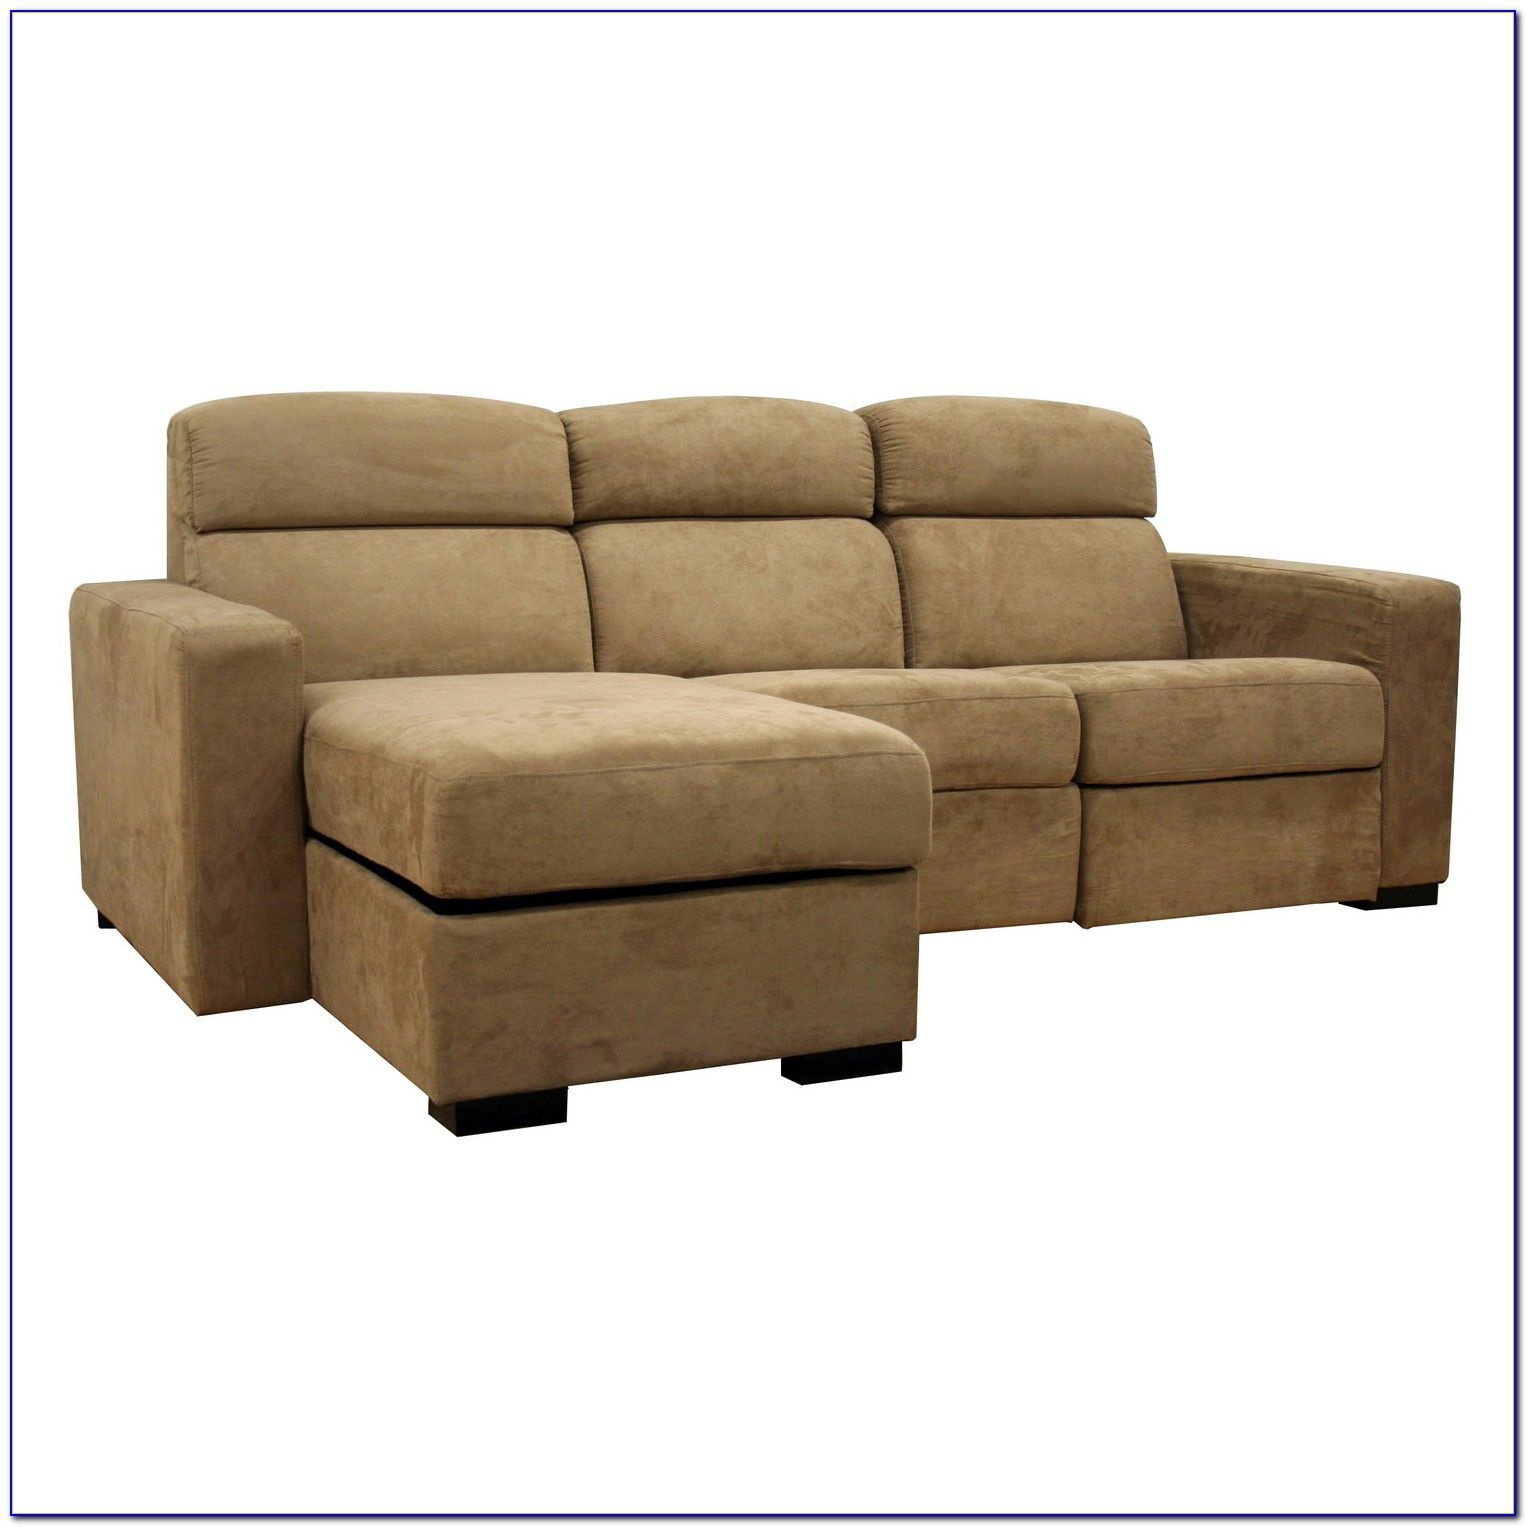 sleeper rooms unique u corner sale macgrath and brown size furniture leather sofas couch full extra power chaise large for shaped recliners ashley sectional red small recliner reclining with canada double modern living room wrap ottoman around dream sofa of